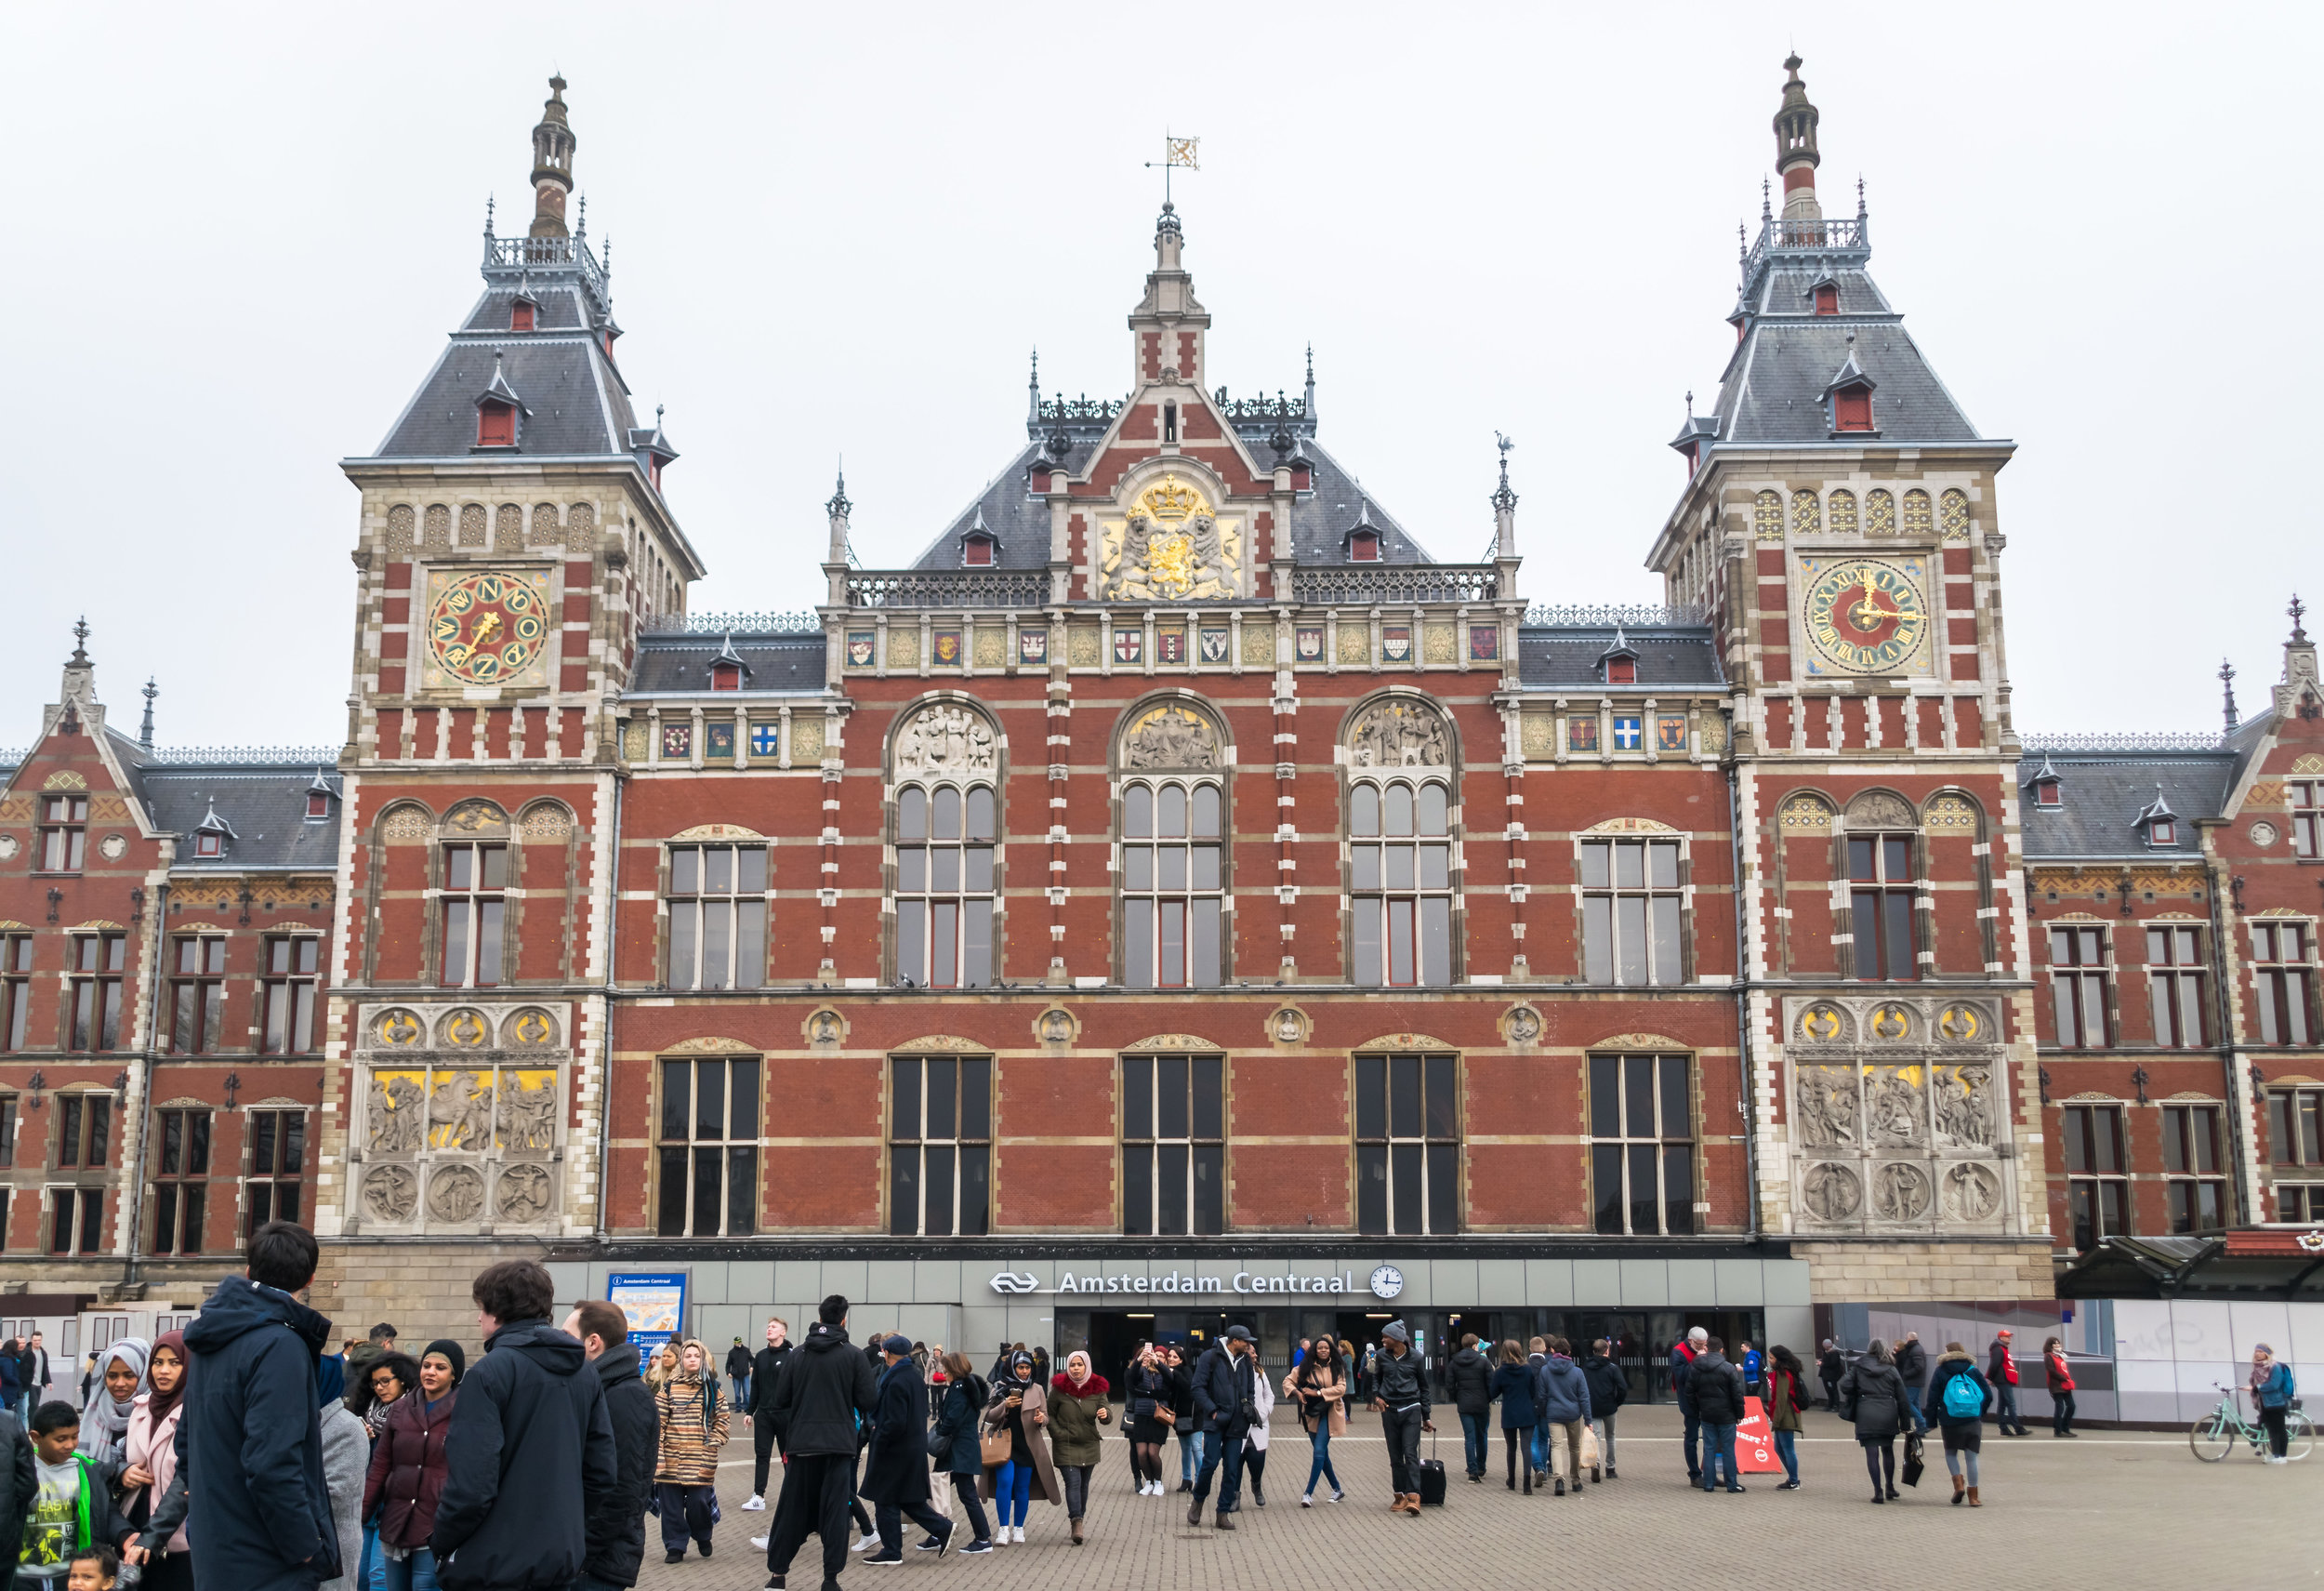 the 1884 central station designed by Pierre Cuypers